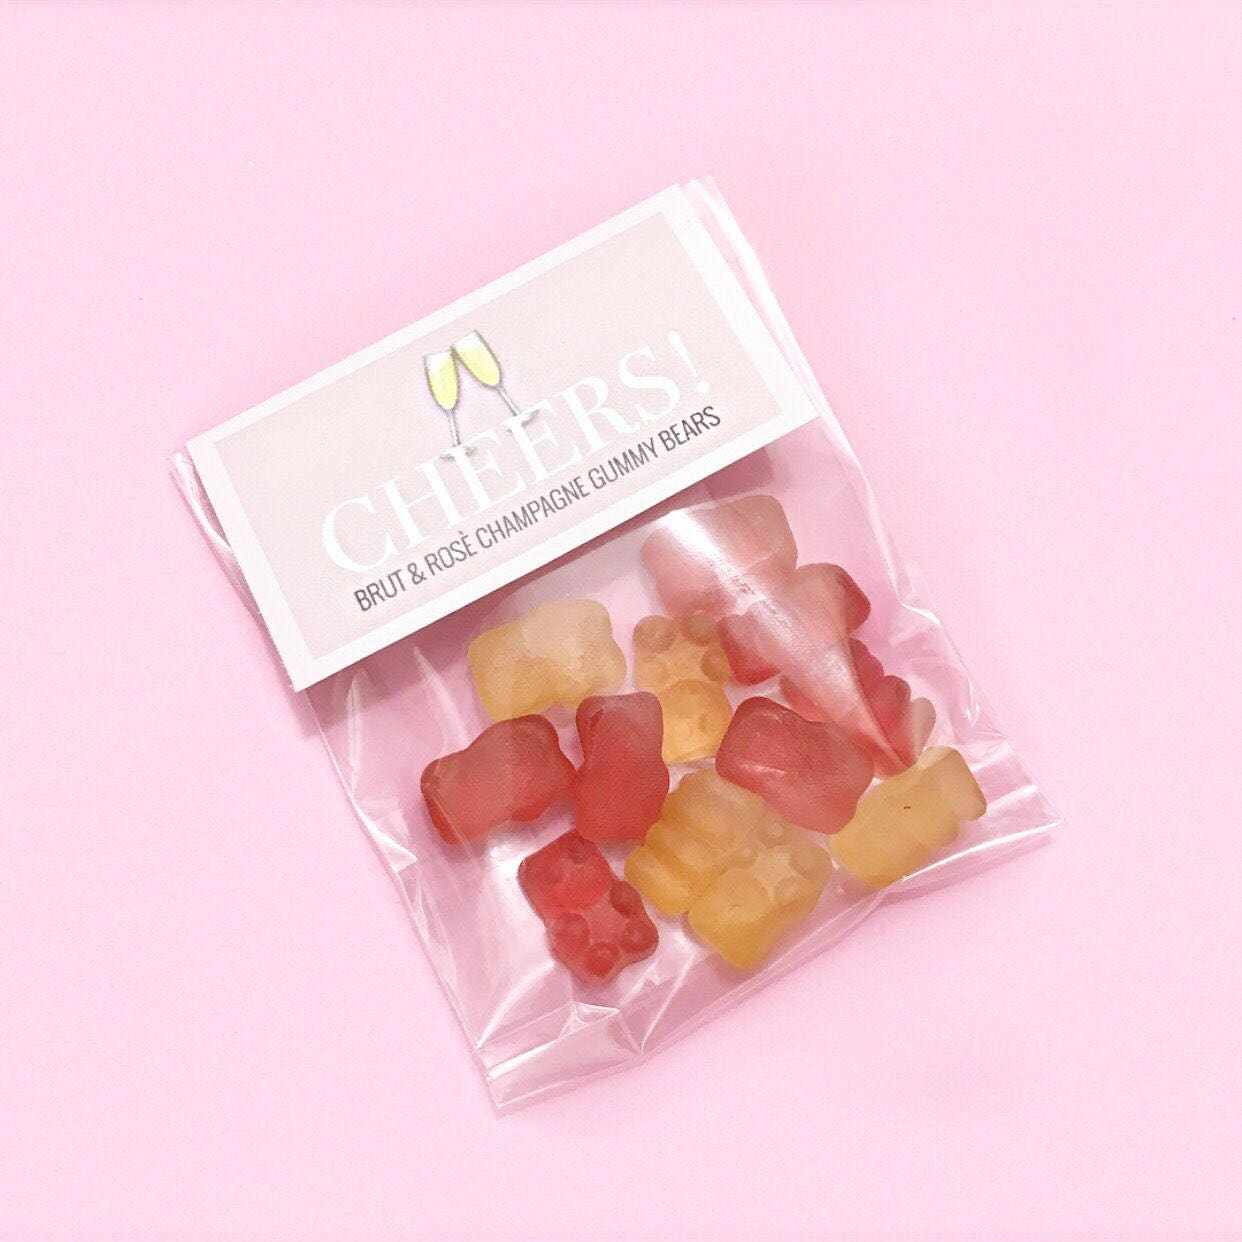 XL Champagne Gummy Bears Rose Brut Flavored Party Favors